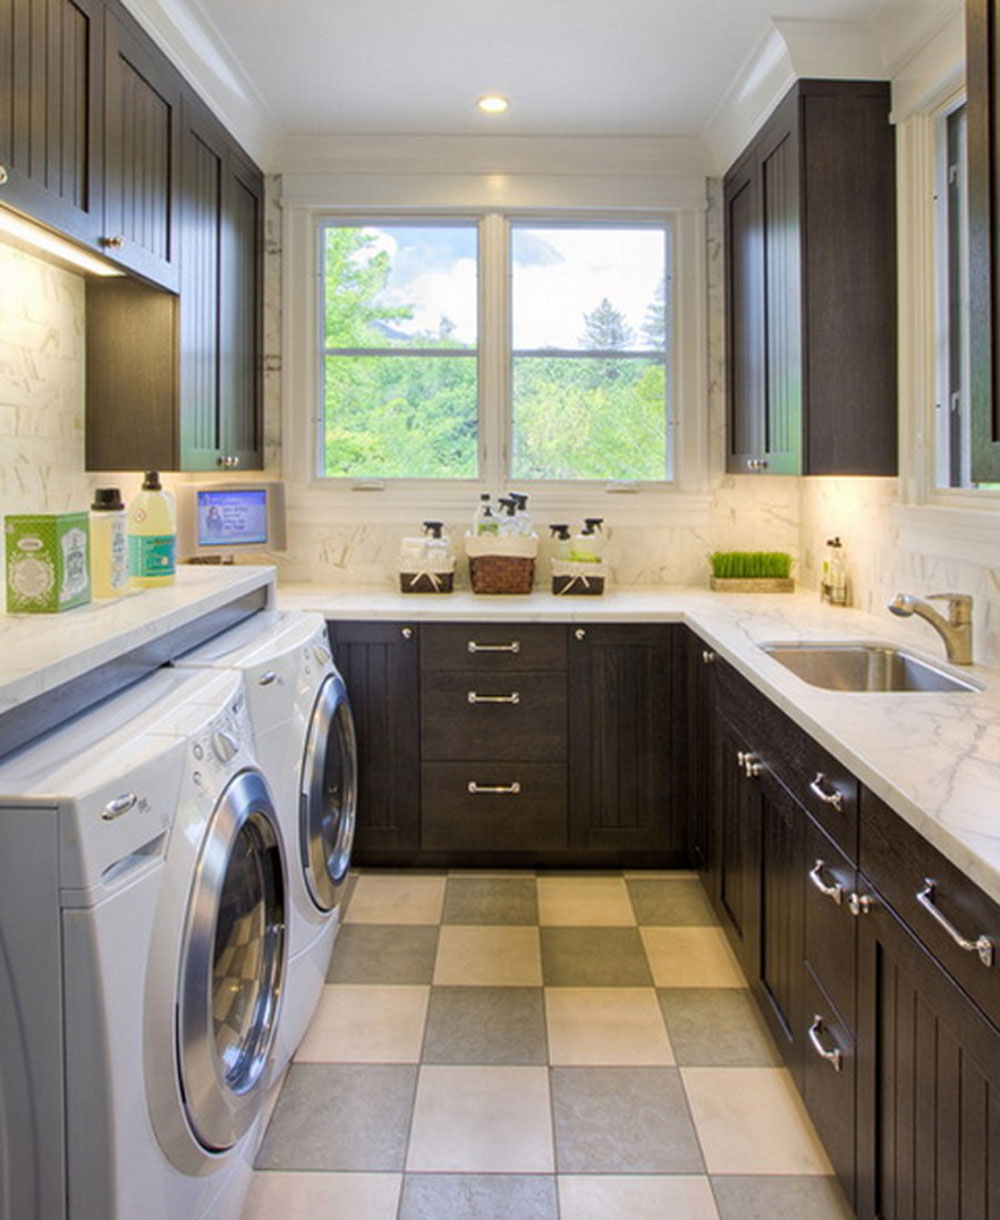 Laundry-room-ideas-for-a-clean-house-3 laundry-room-ideas for a clean house